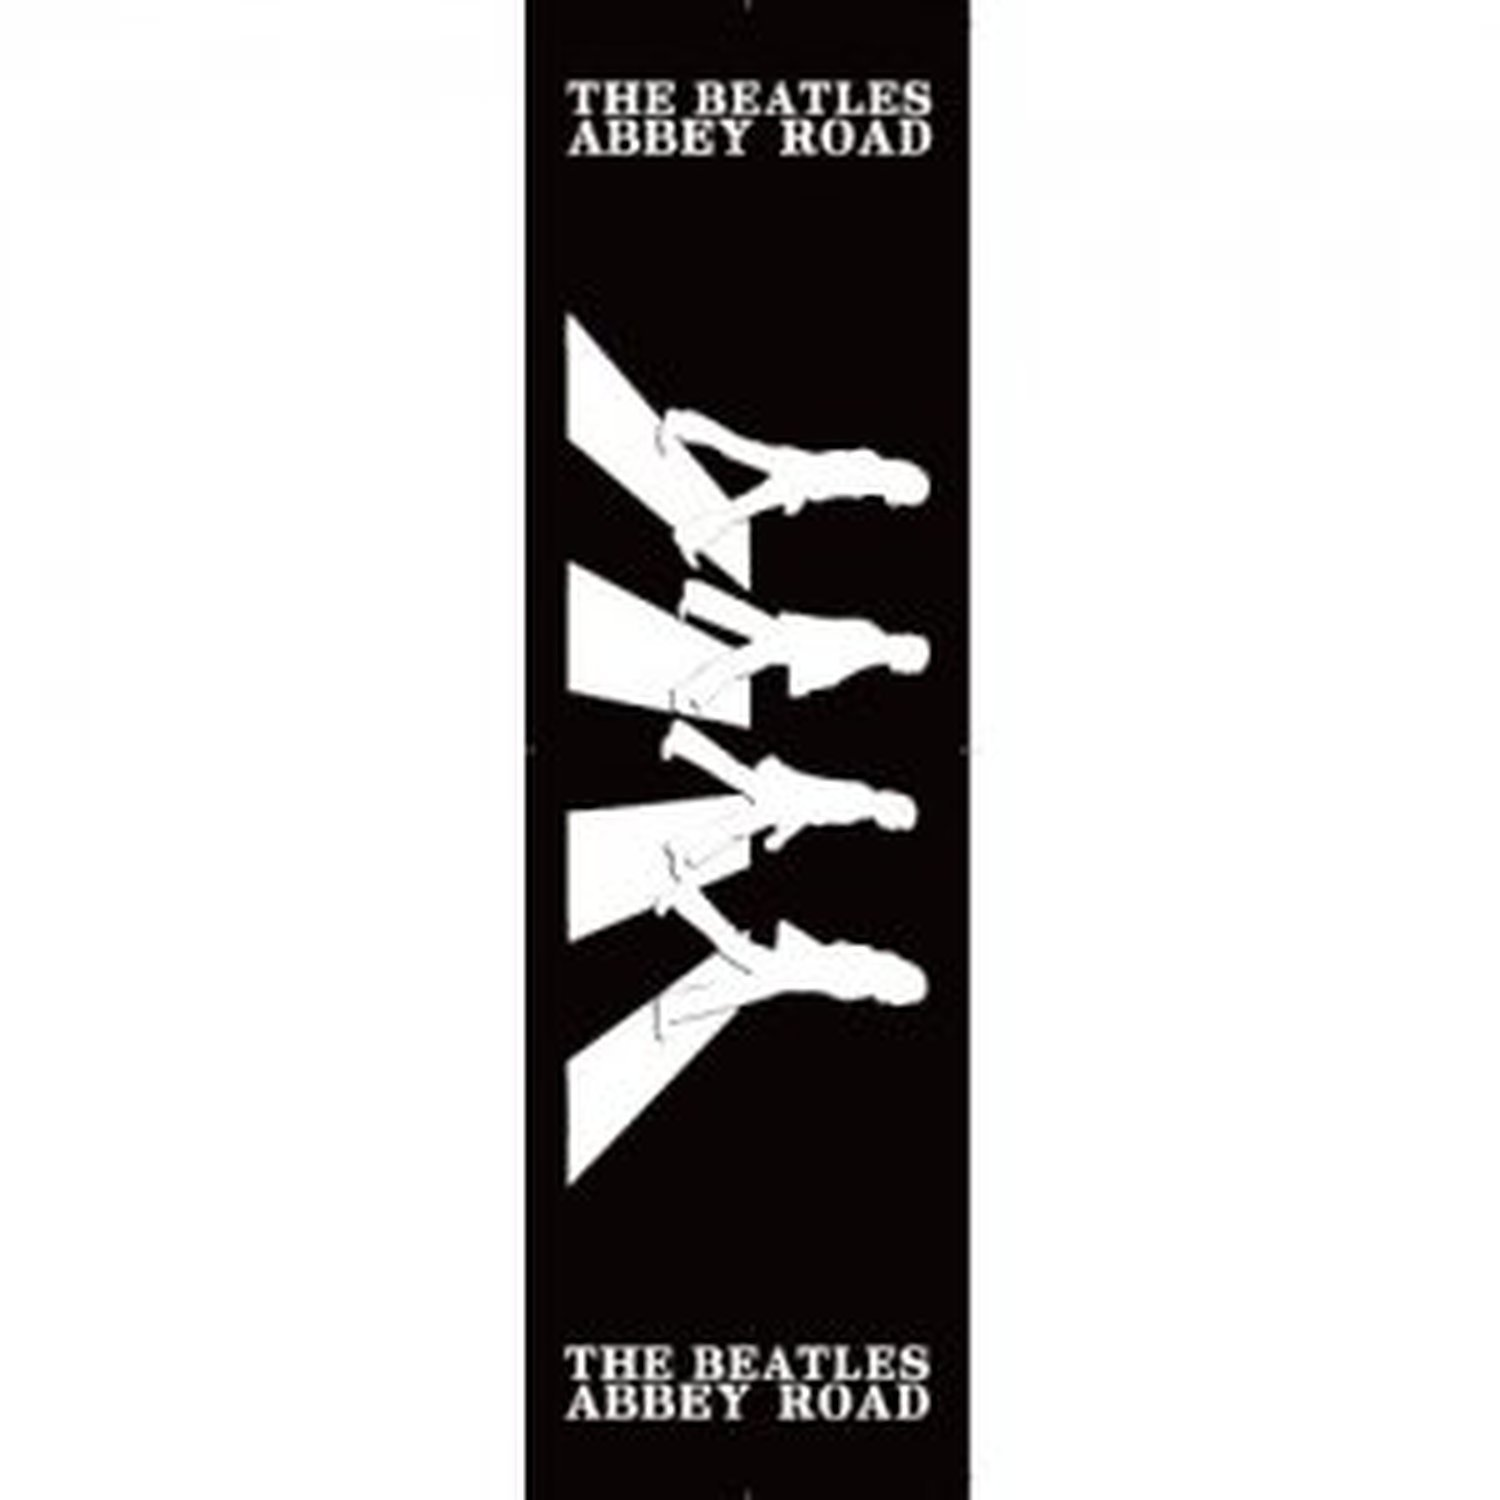 1500x1500 The Beatles Abbey Road Black And White Silhouette Album Cover